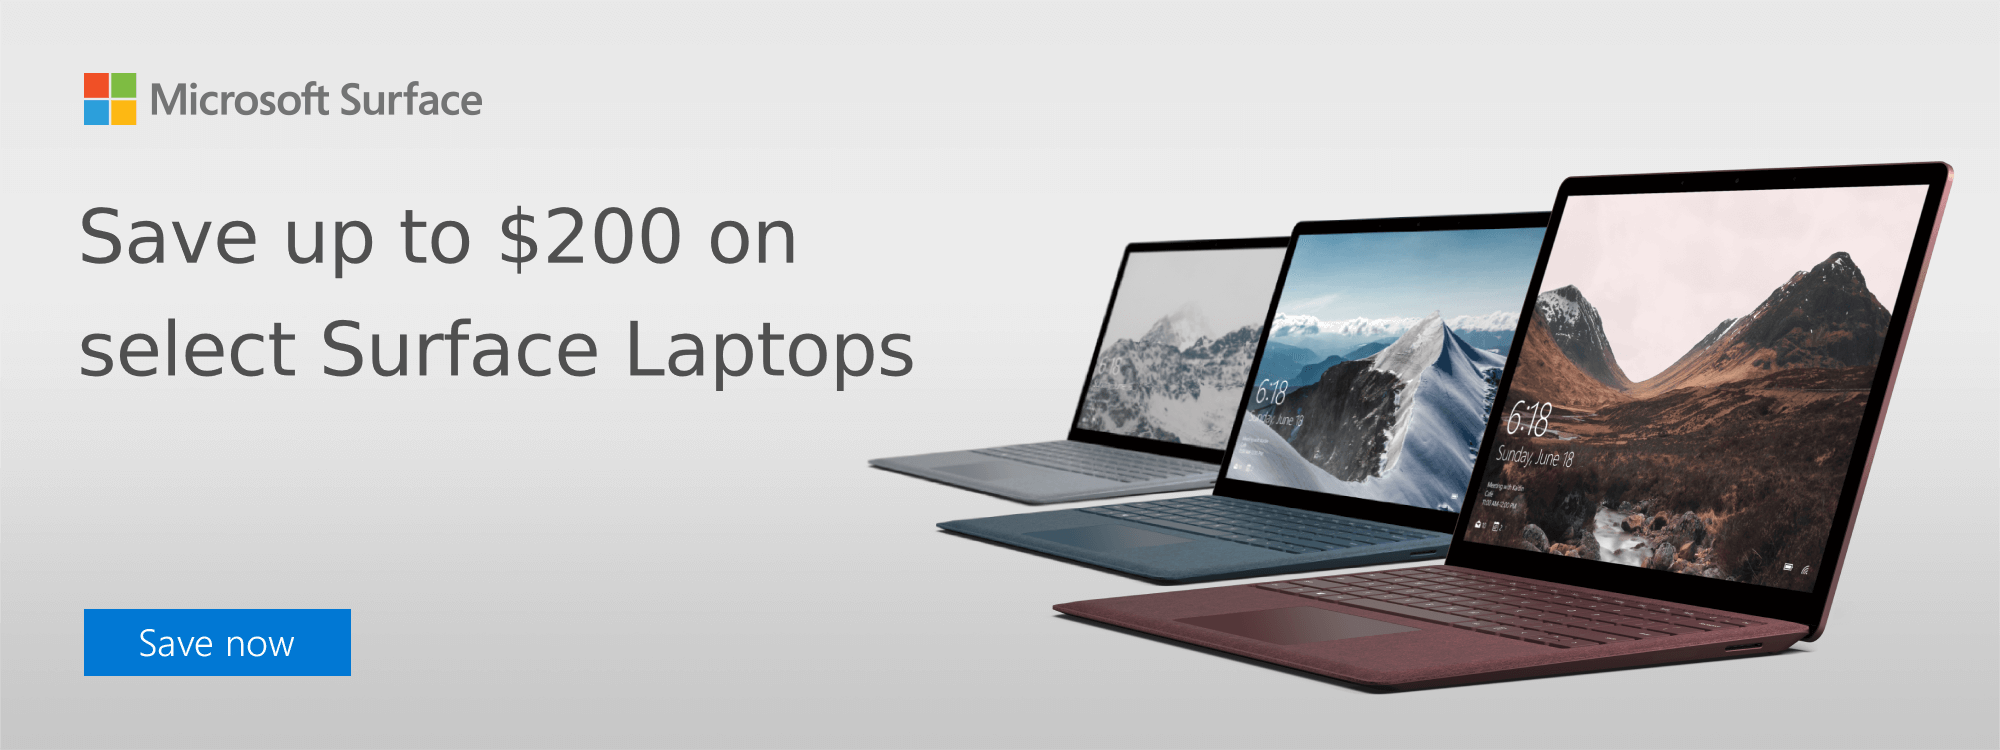 Save up to $200 on select Surface Laptops